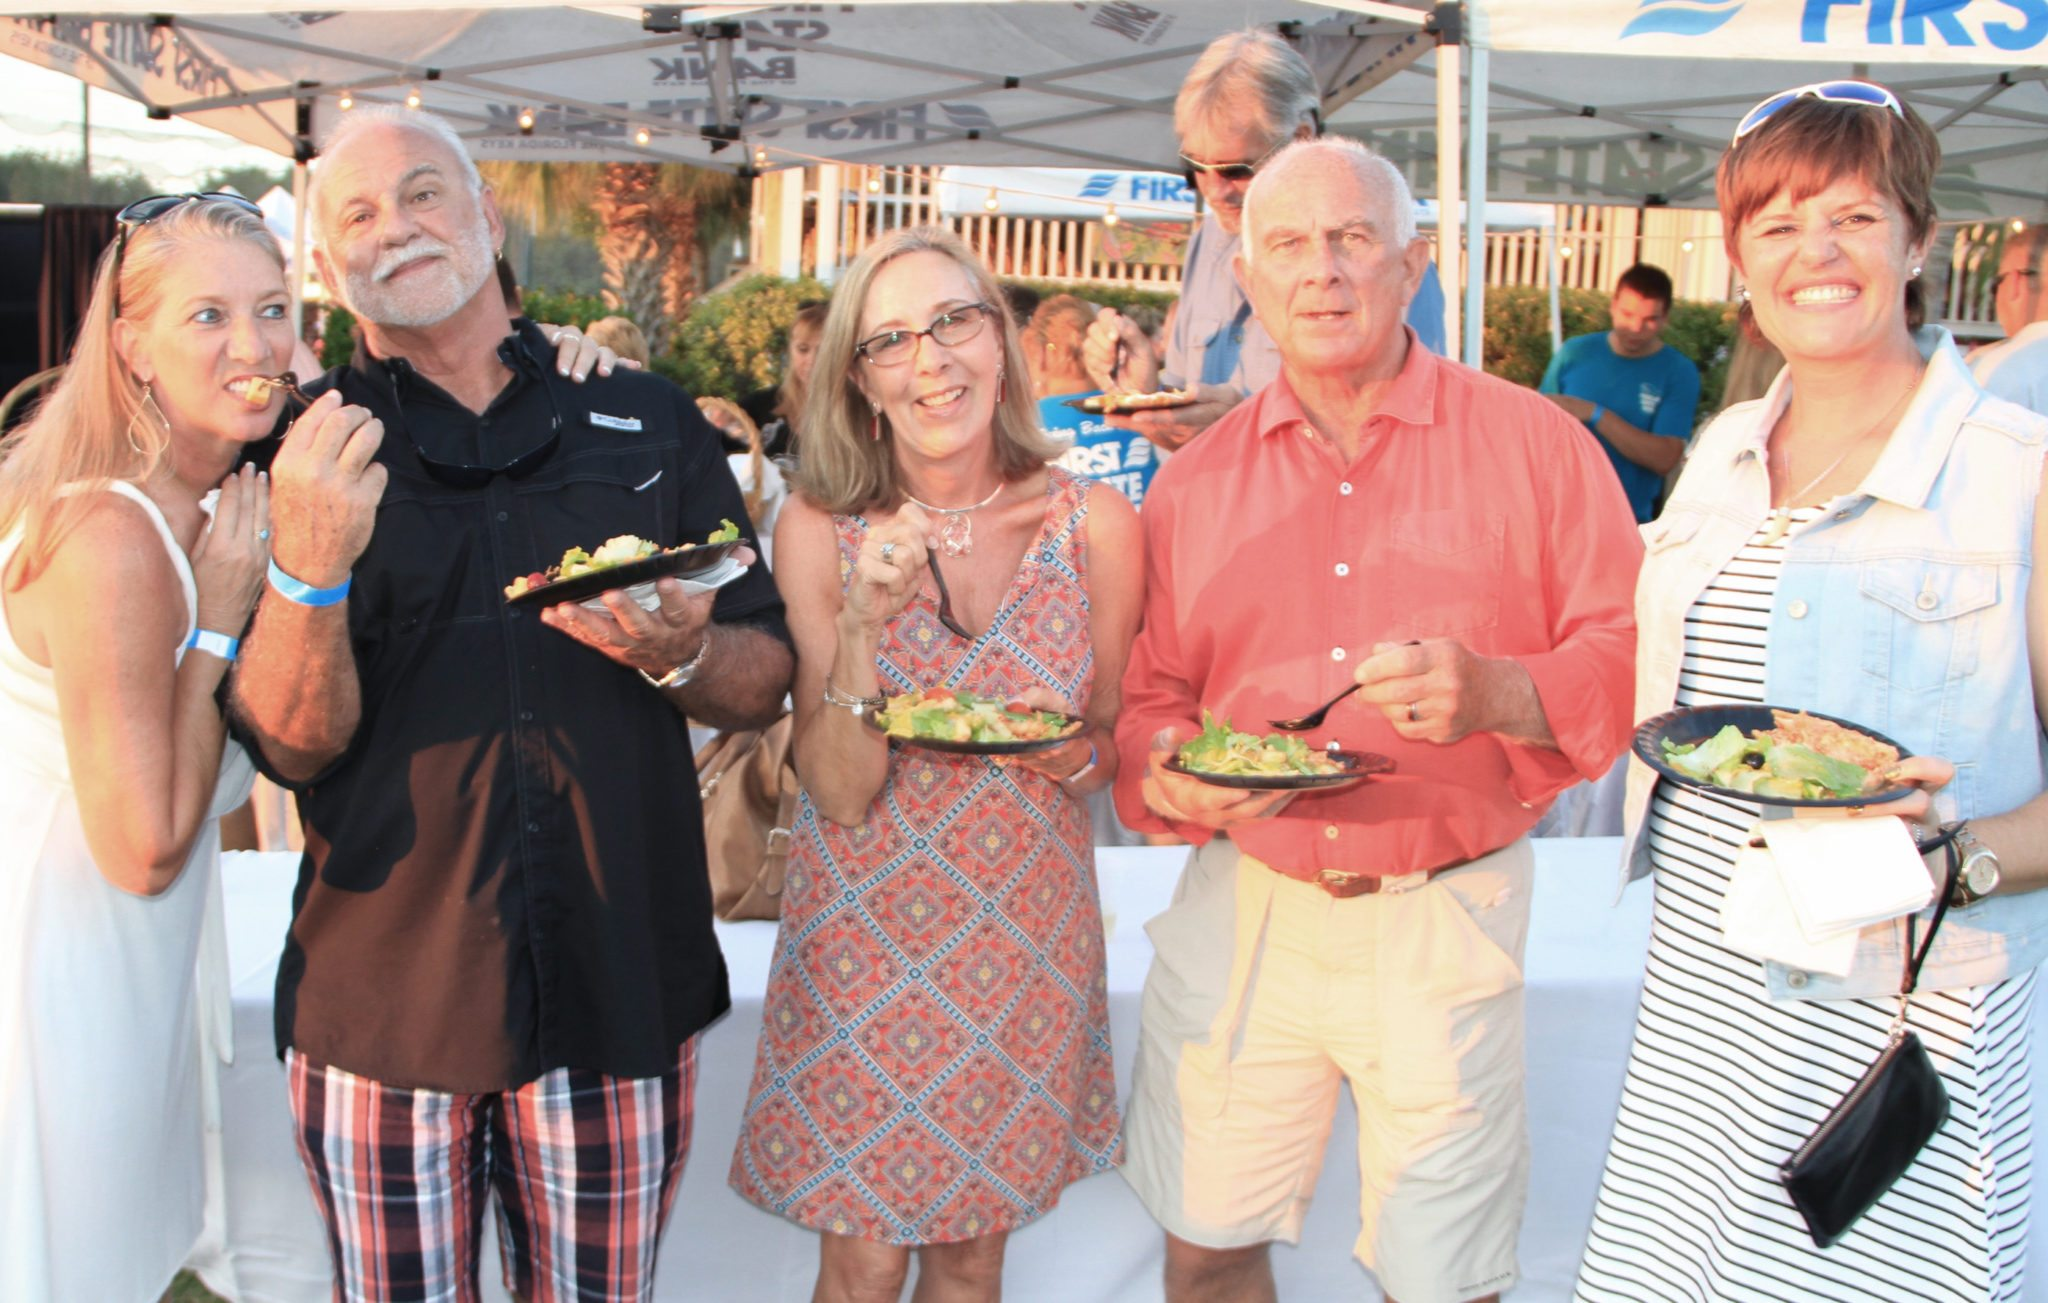 Jo Socha, County Commissioner Tony Yaniz, Christie and Patrick O'Connell and Becki Balcer snack on some of the goodies the golf course provided for the fund-raiser.